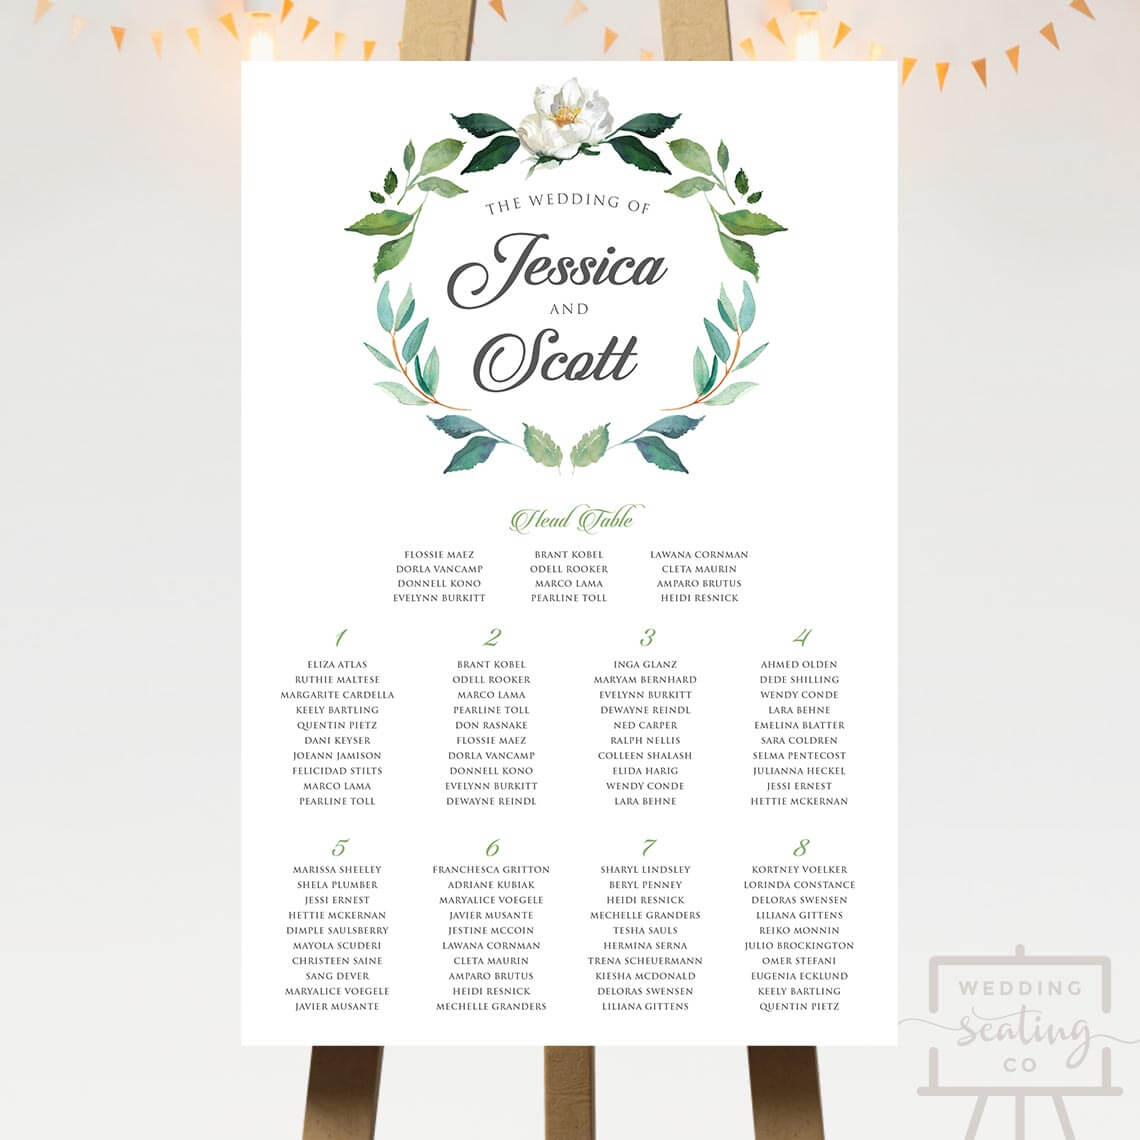 Wreath Seating Chart With Head Table